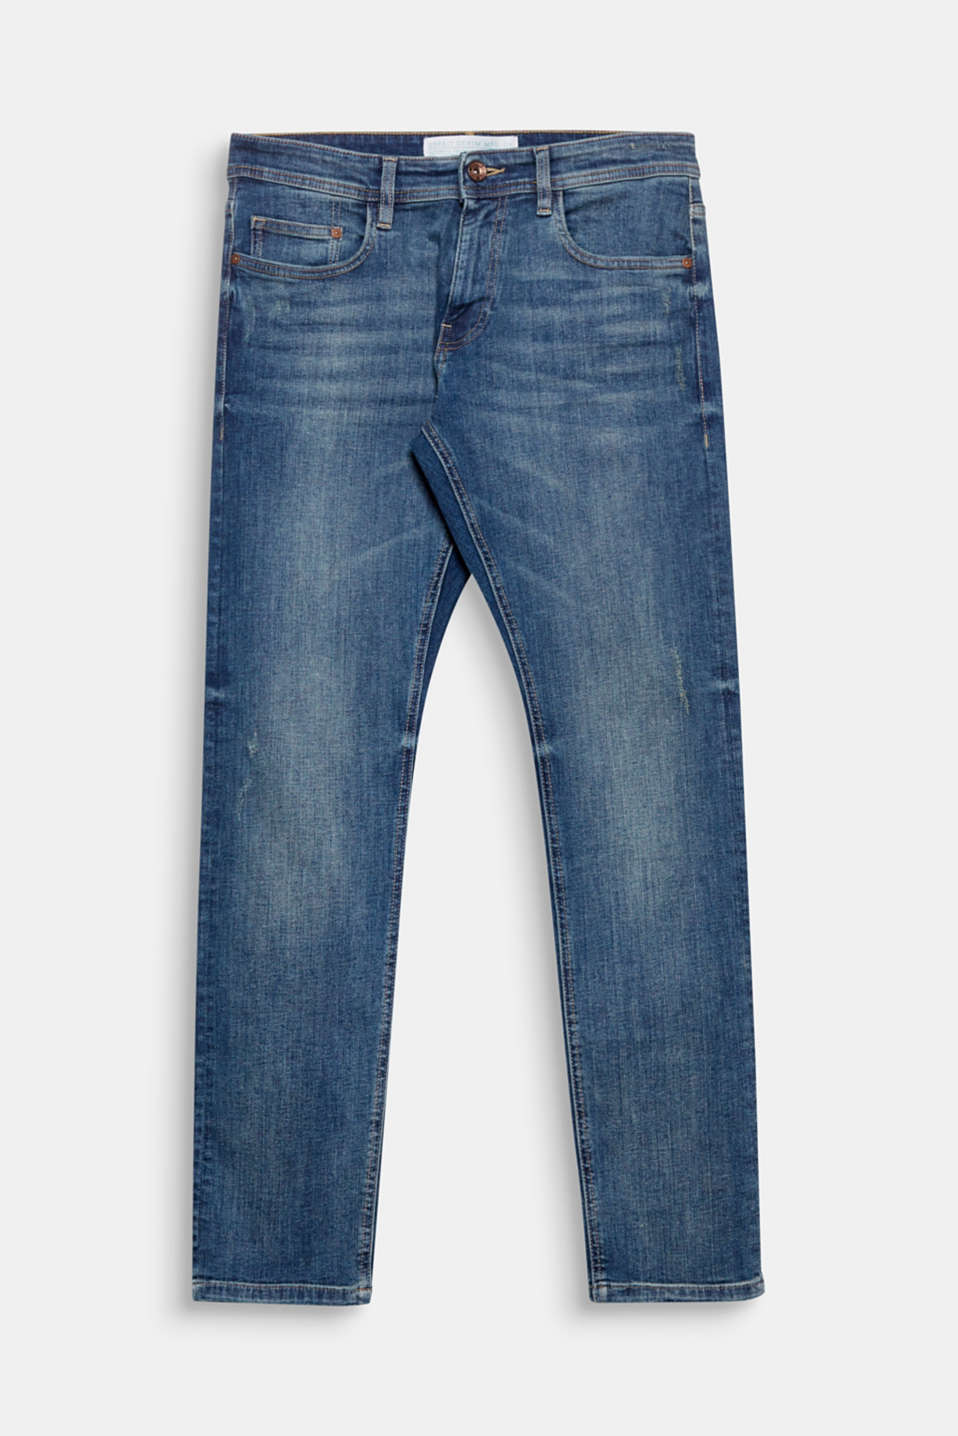 We love denim! These jeans with gently processed, high-quality organic cotton are very eye-catching thanks to the distinctive vintage look.